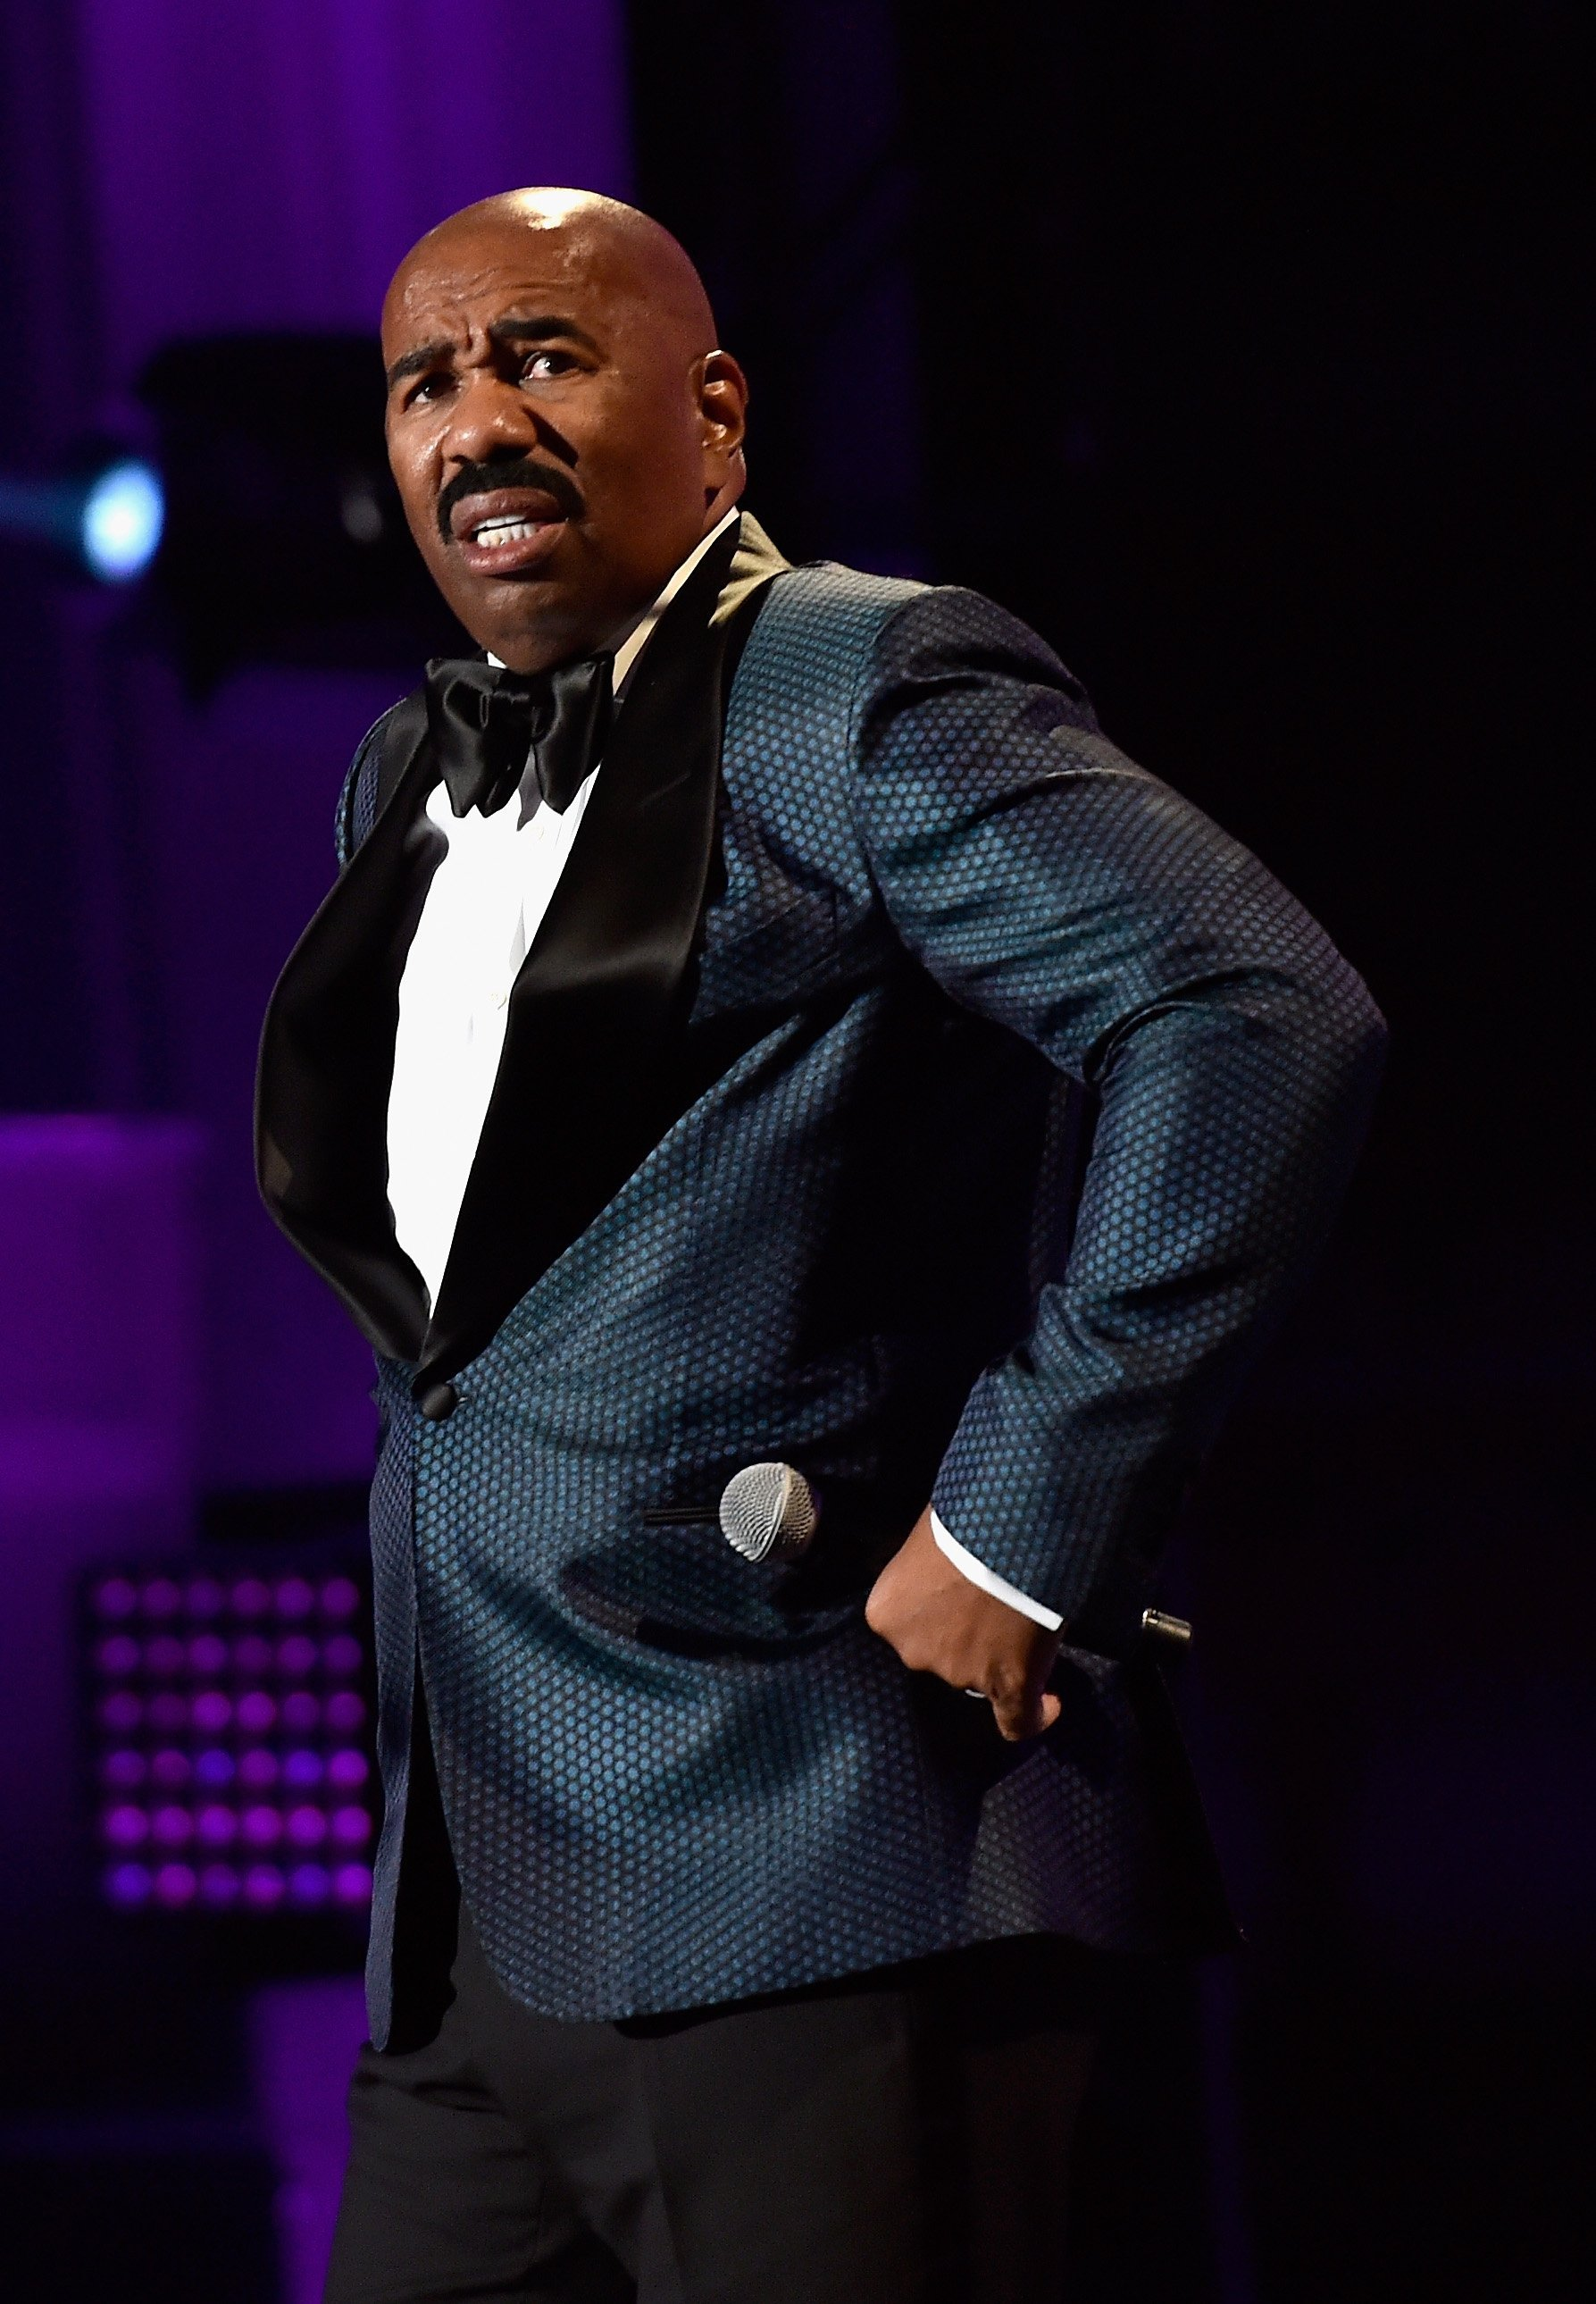 Steve Harvey as host at the 2016 Neighborhood Awards at the Mandalay Bay Events Center on July 23, 2016 in Las Vegas, Nevada. | Source: Getty